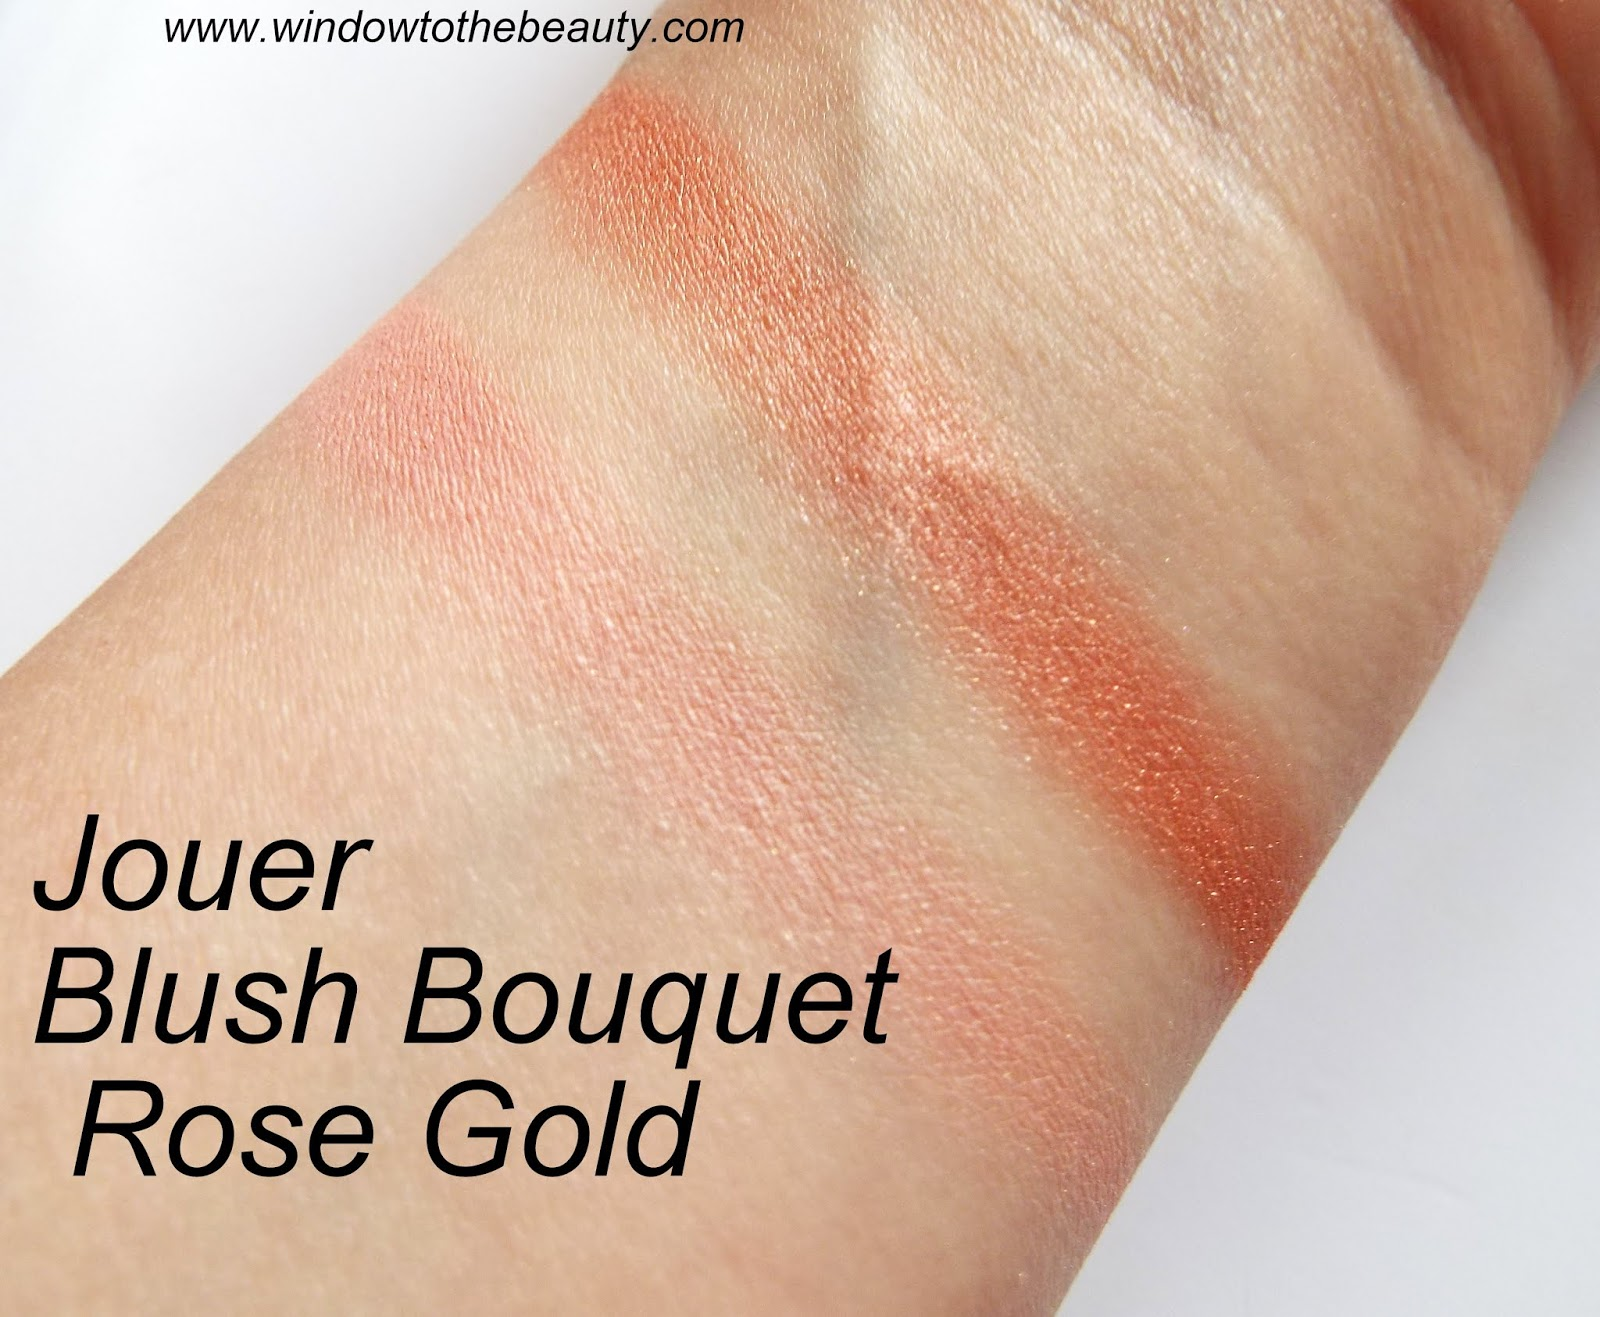 Window to The beauty: Jouer Blush Bouquet Dual Worth the Hype?